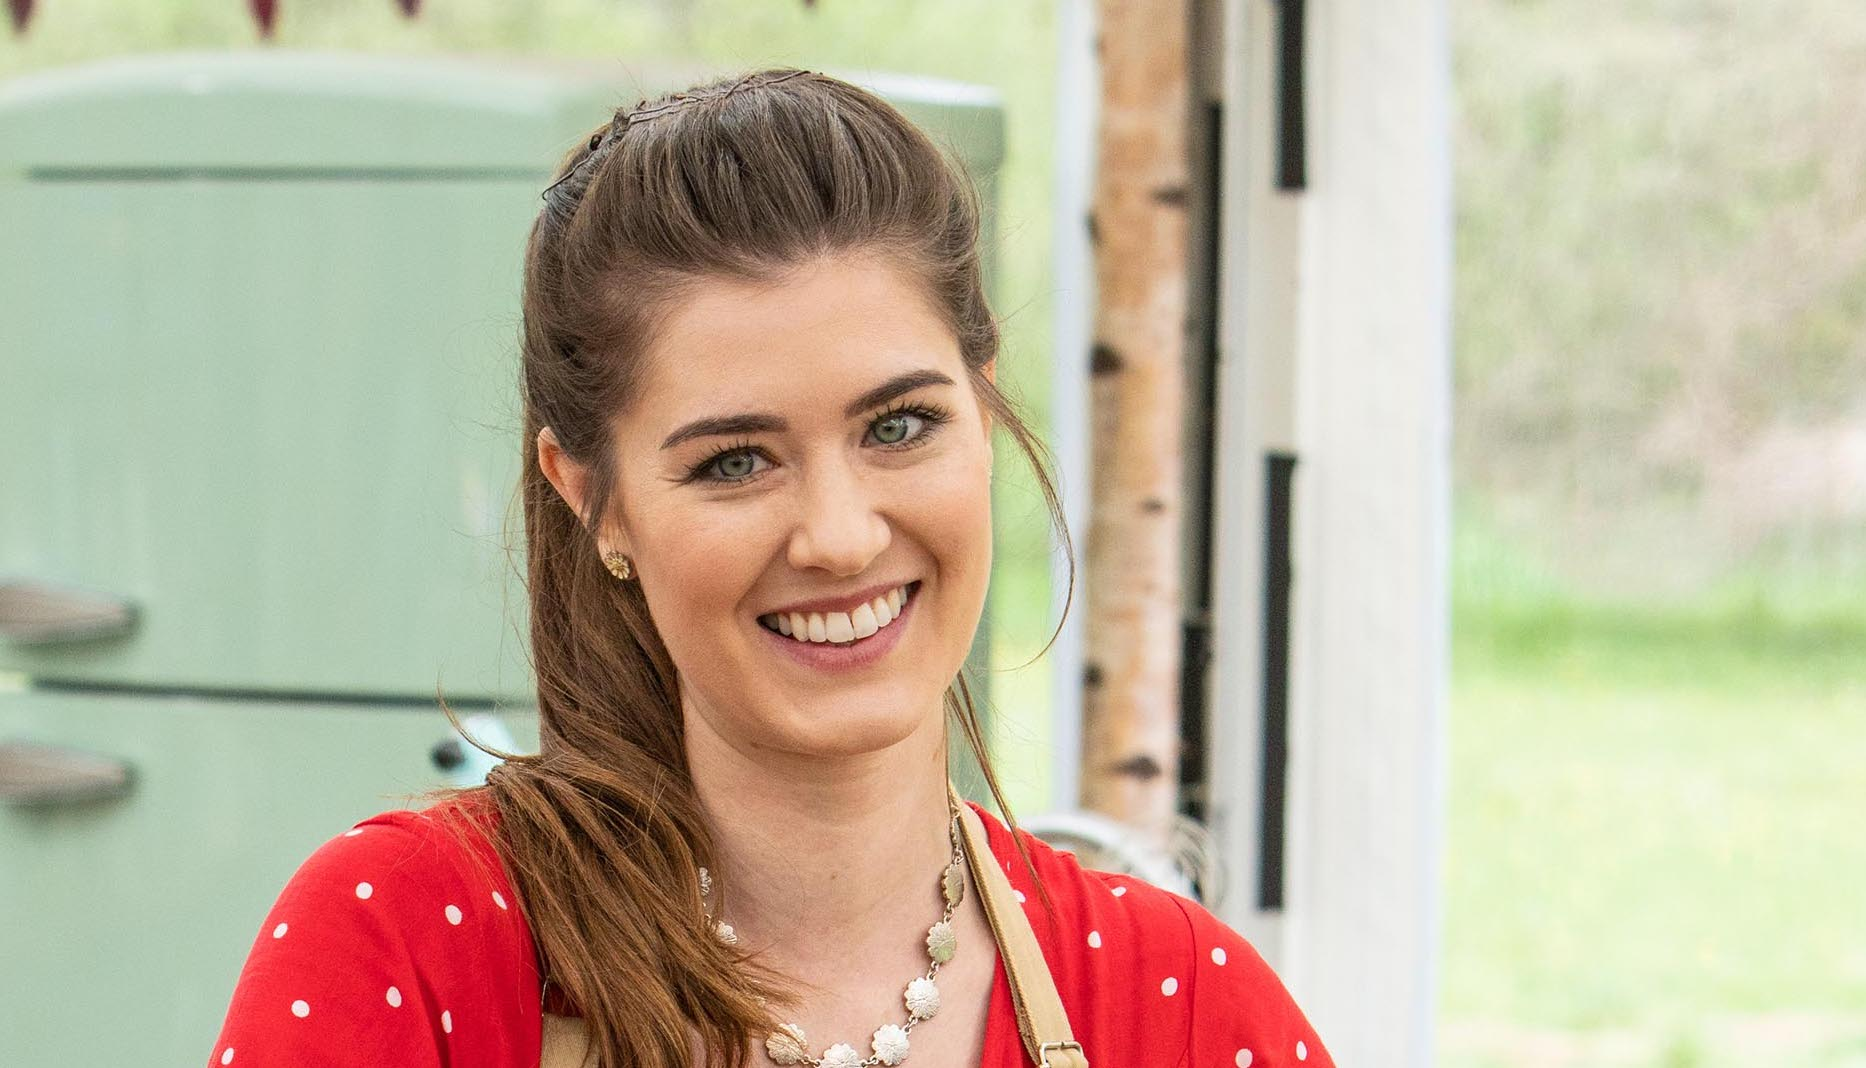 Great British Bake Off contestants Alice Fevronia and Henry Bird 'are now dating'